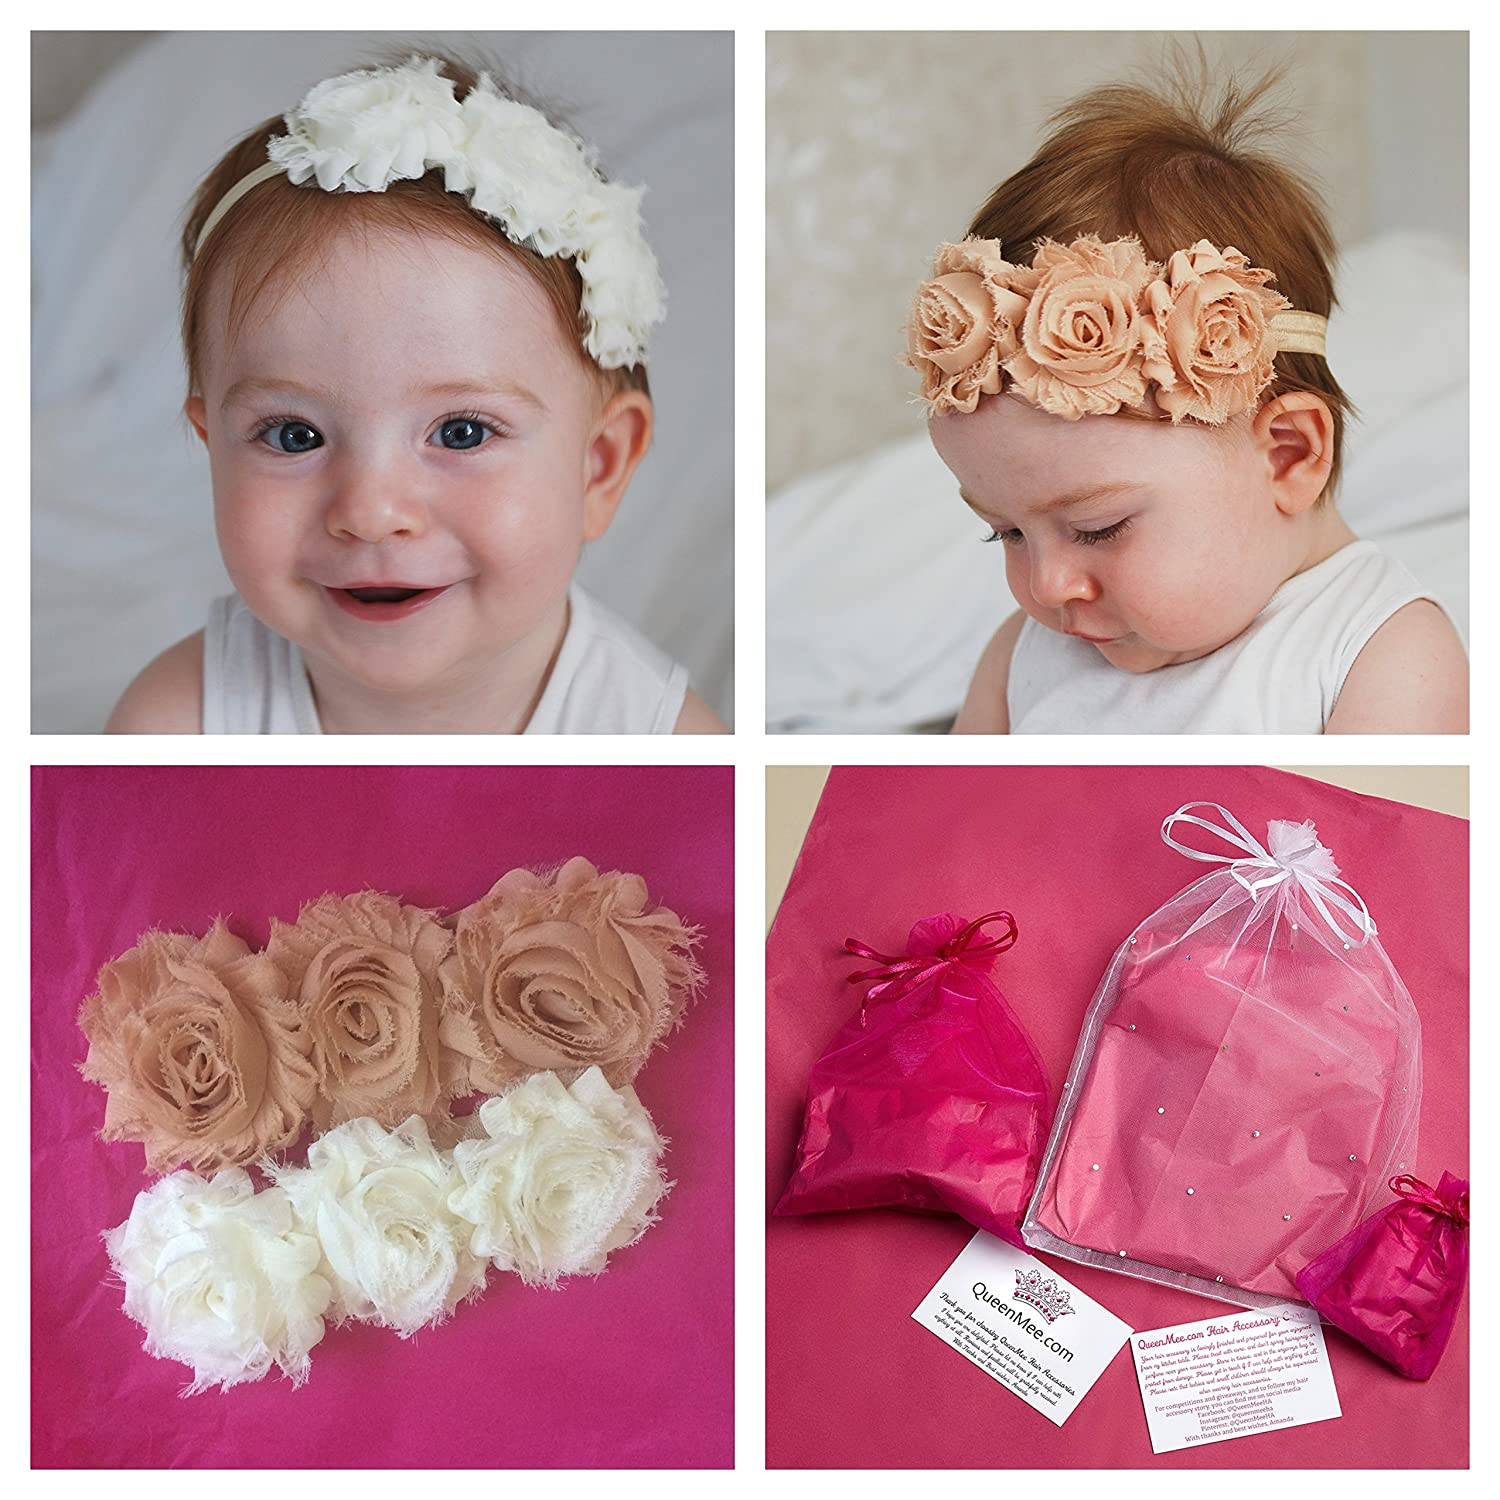 Amazon.com  QueenMee Baby Flower Headband in Ivory and Beige Floral Hair  Band Set of 2 in Giftwrap (Ivory)  Baby 8c336151bb7